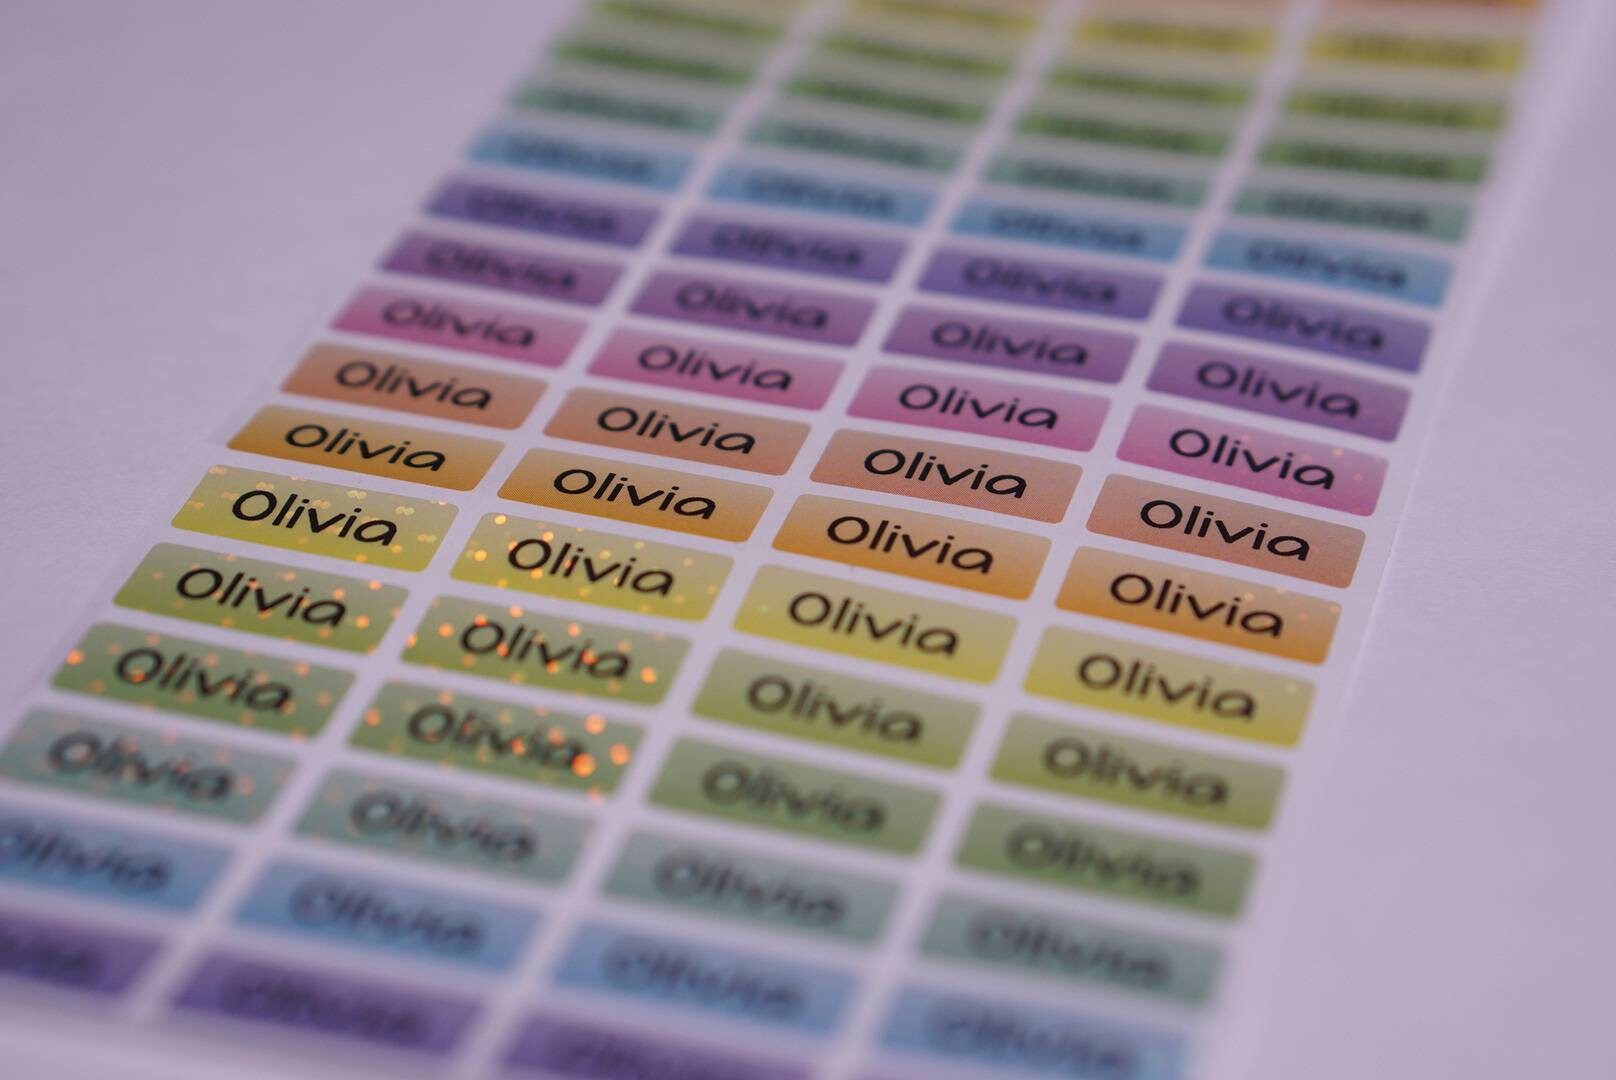 Waterproof Glittery Name Labels Name Stickers personalized image 3